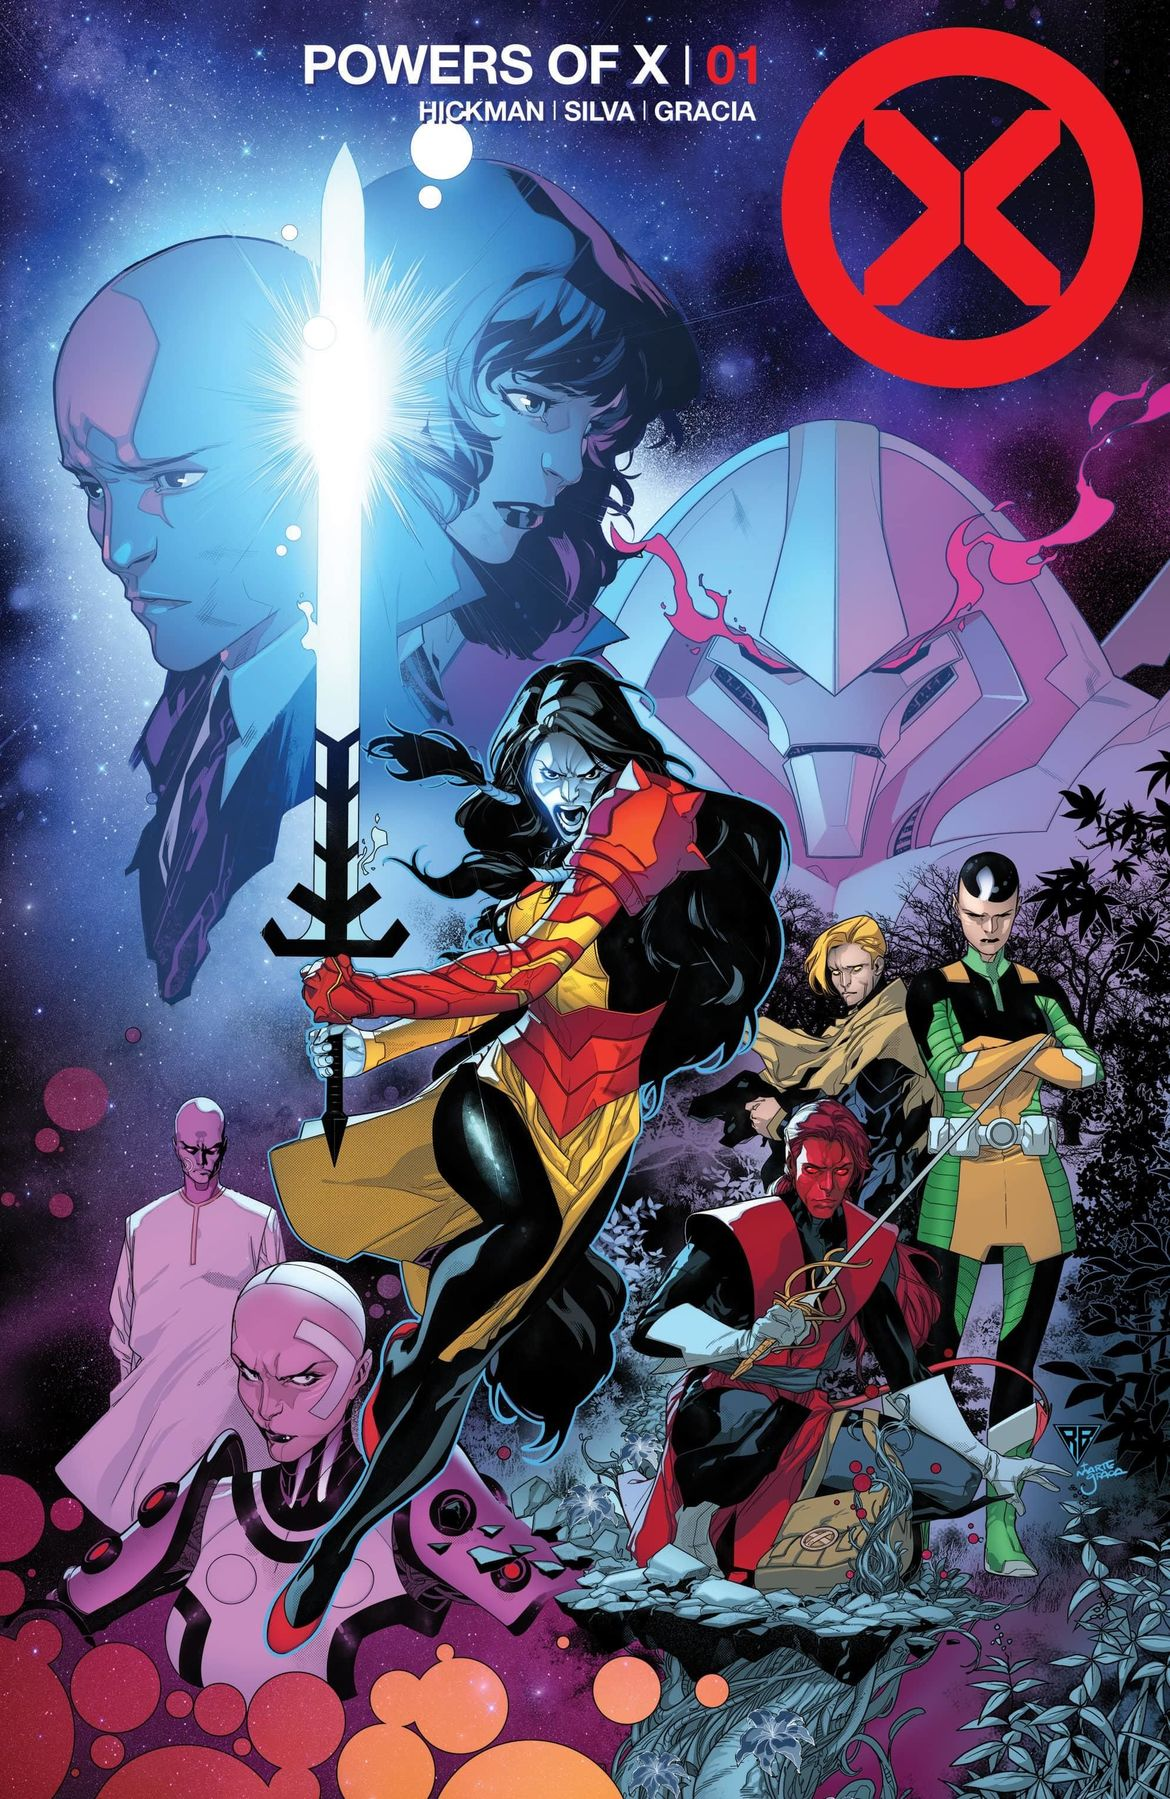 POWERS OF X cover 1